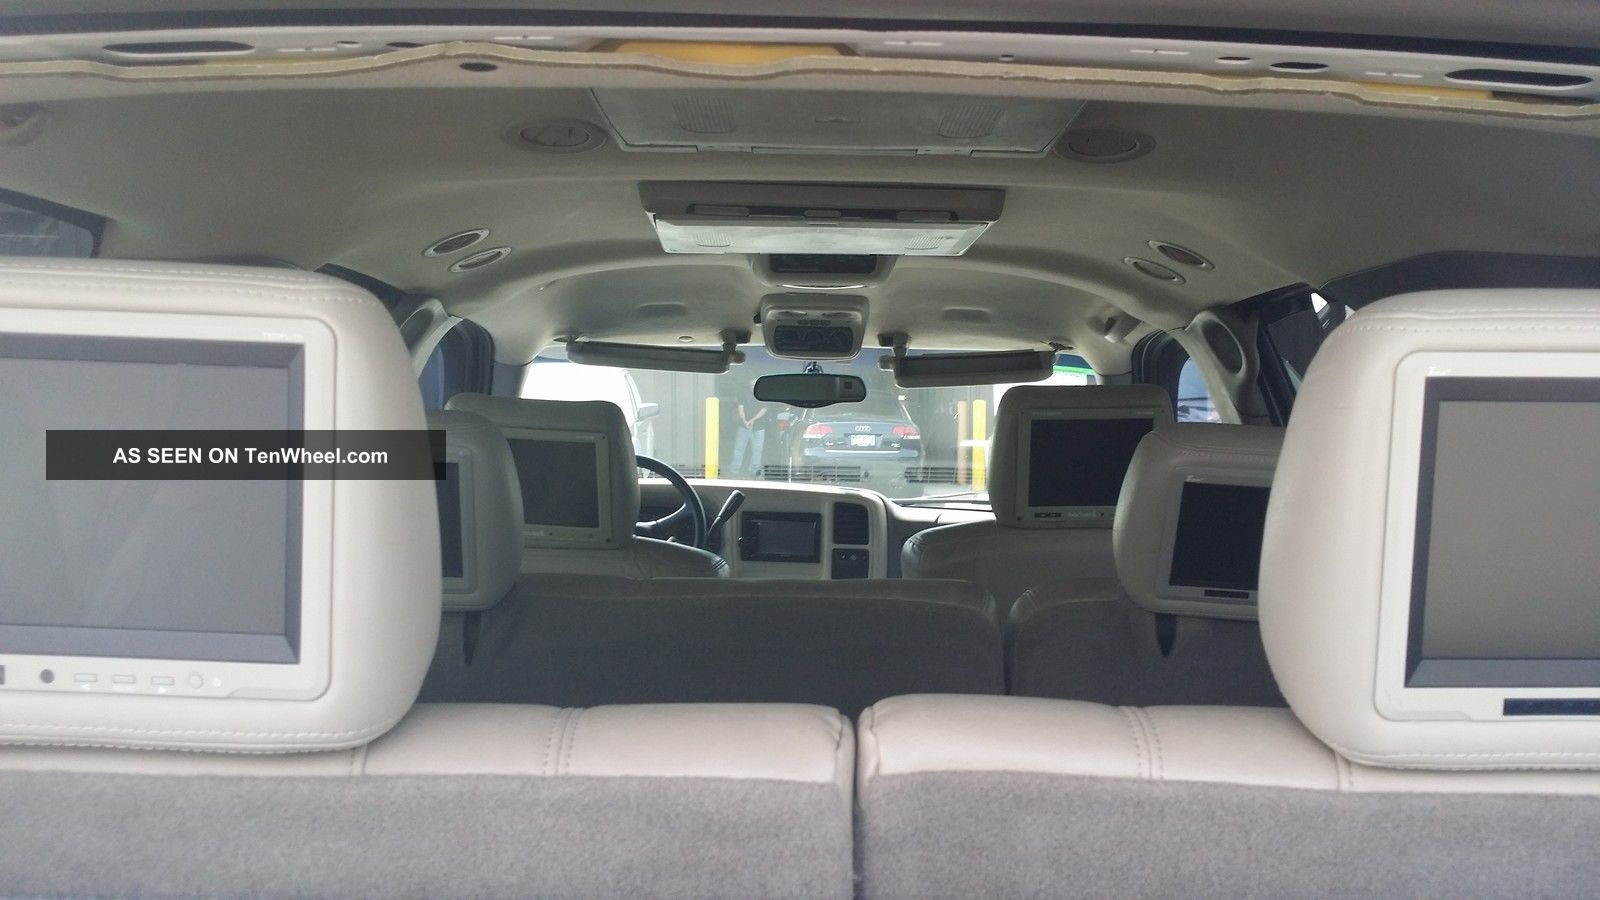 2001 chevy tahoe design for 2001 chevy tahoe interior parts